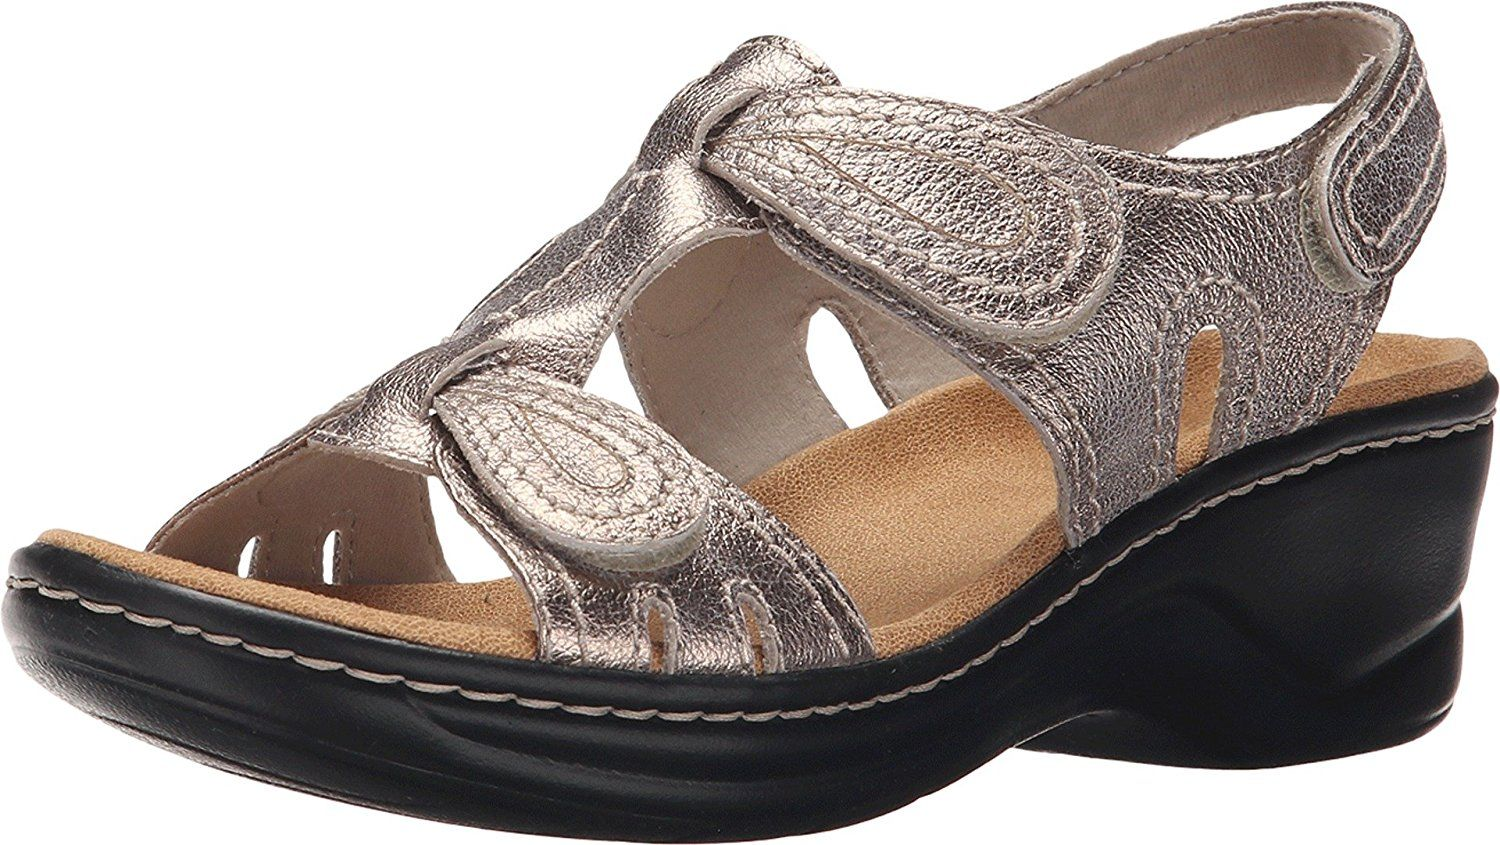 536f77375581 Clarks Women s Lexi Walnut Q Gold Metallic Sandal 6 D - Wide    Find out  more details by clicking the image   Clarks sandals